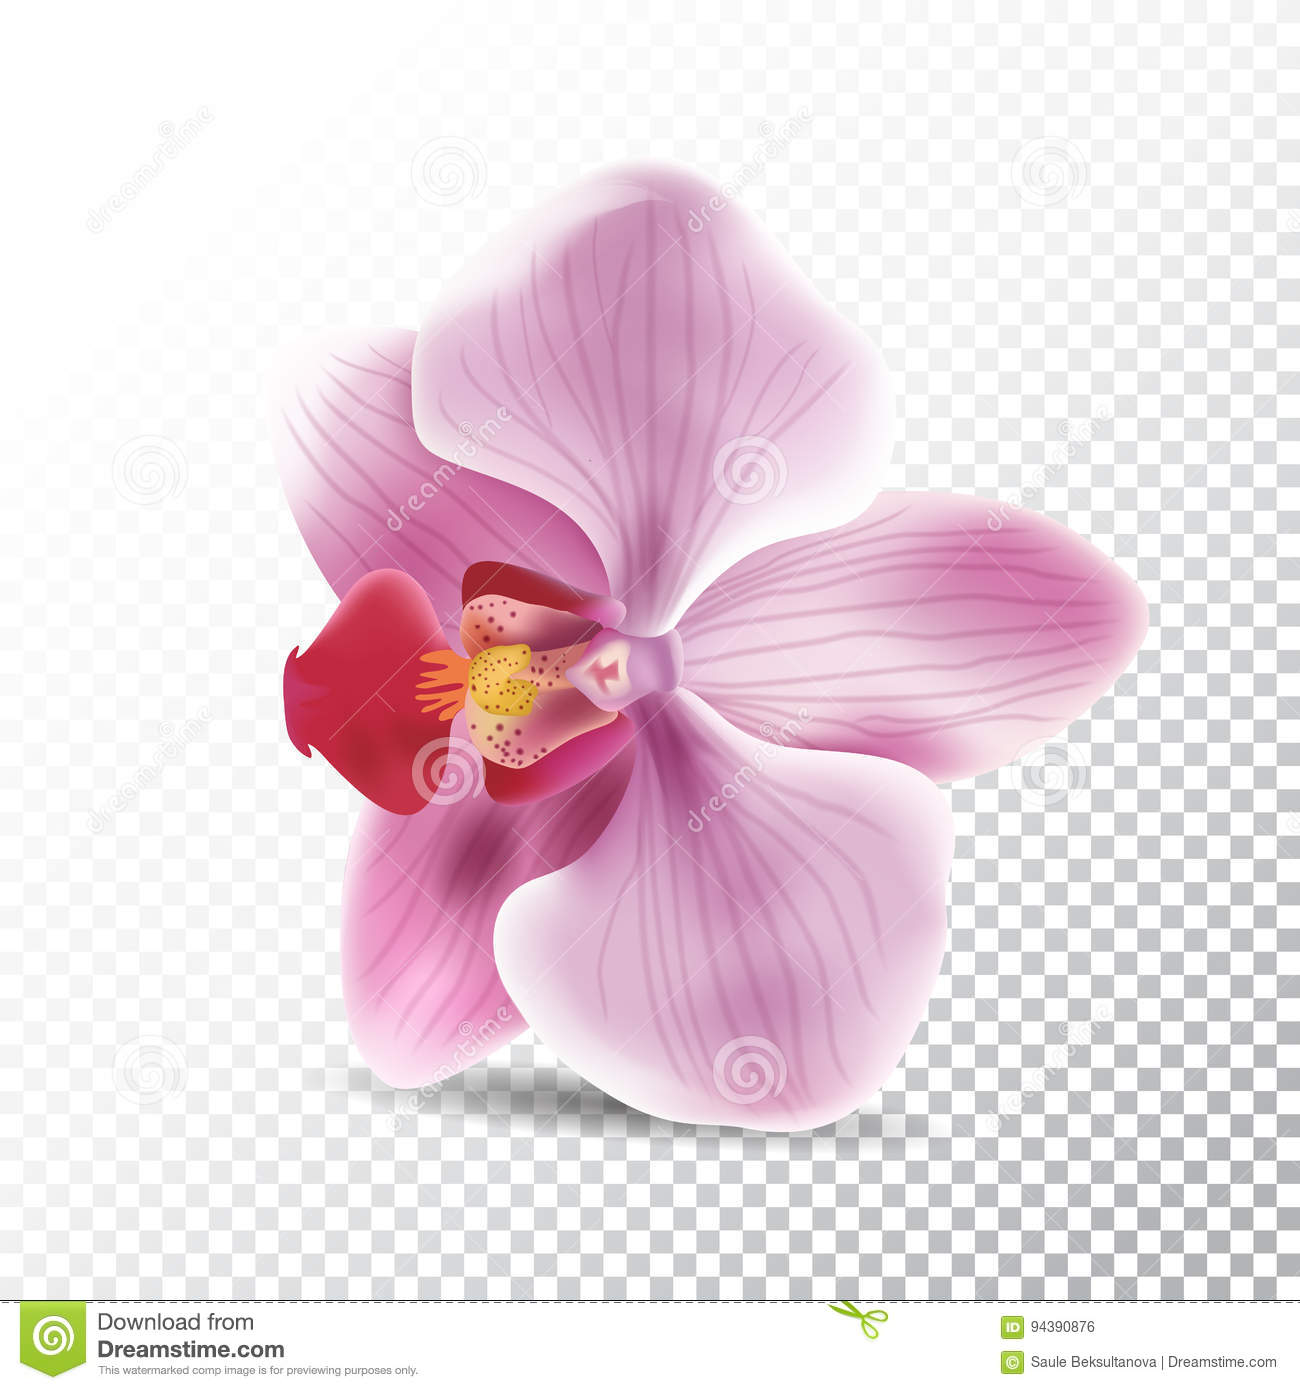 Orchid Flower Isolated On Transparent Background Vector Realistic Illustration Of Pink